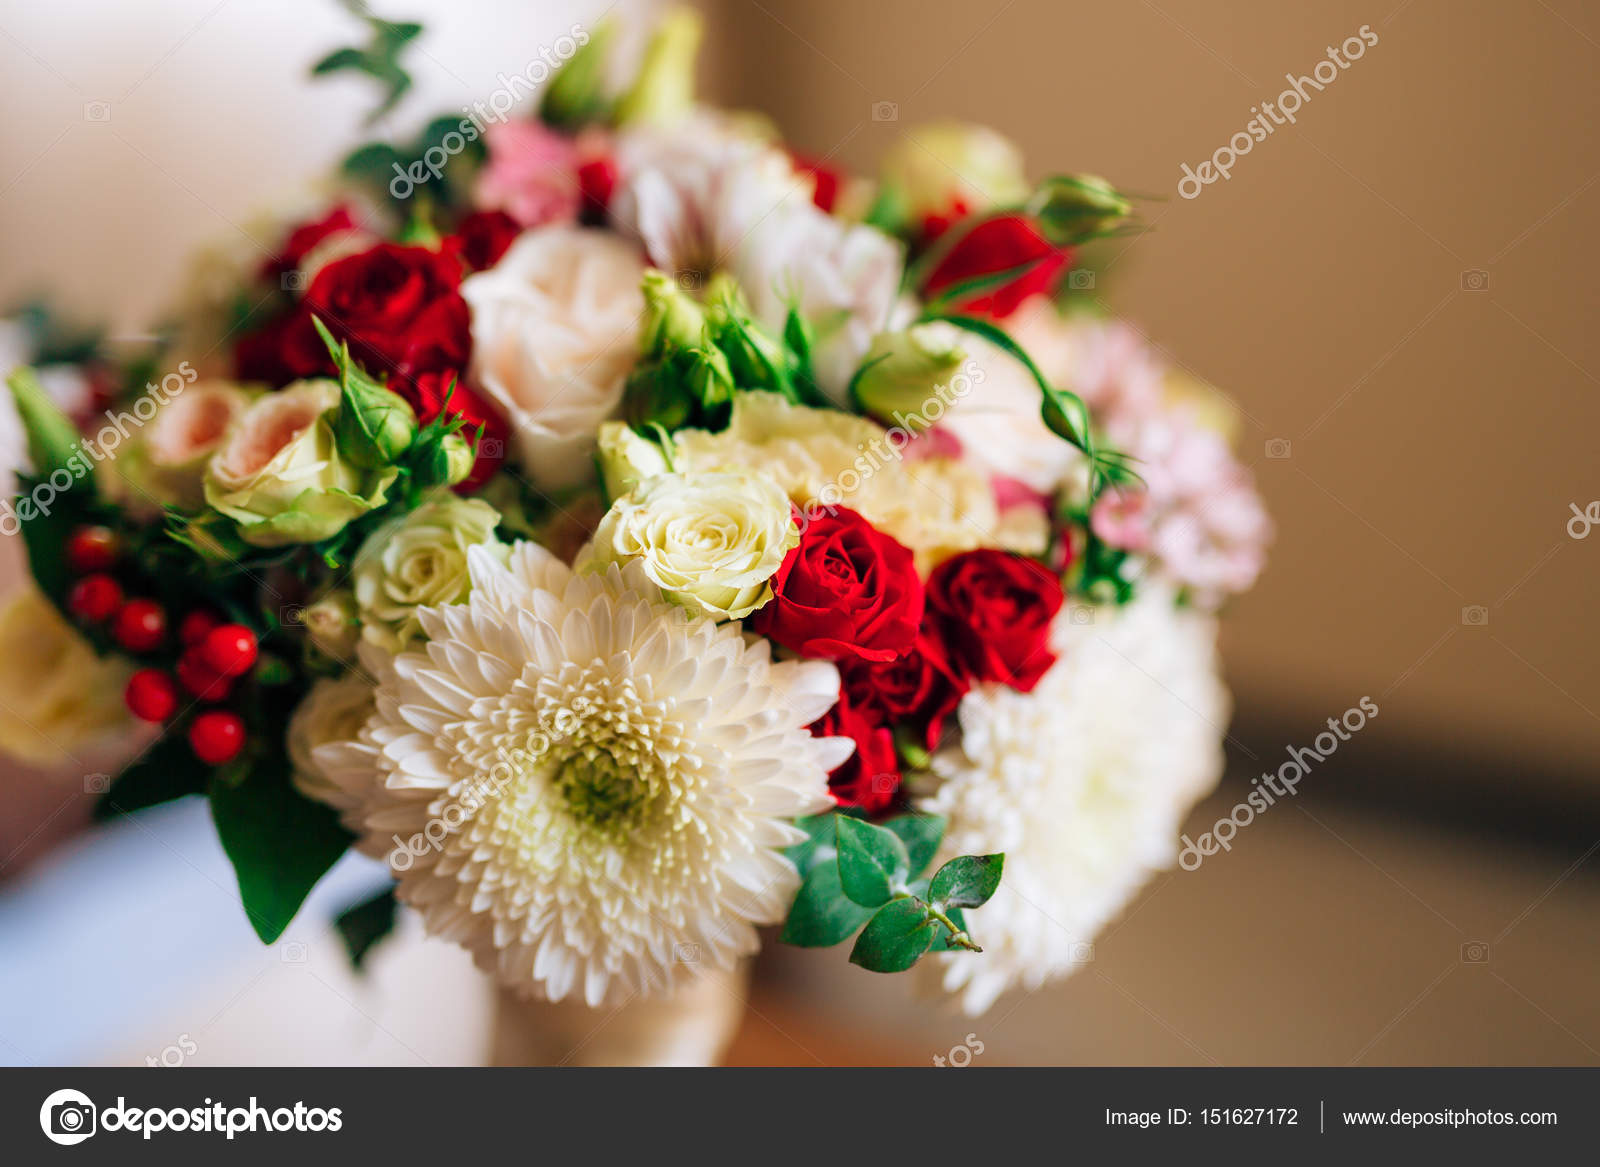 Wedding Bridal Bouquet Of Roses Chrysanthemums Eucalyptus Baby Stock Photo Image By C Nadtochiy 151627172